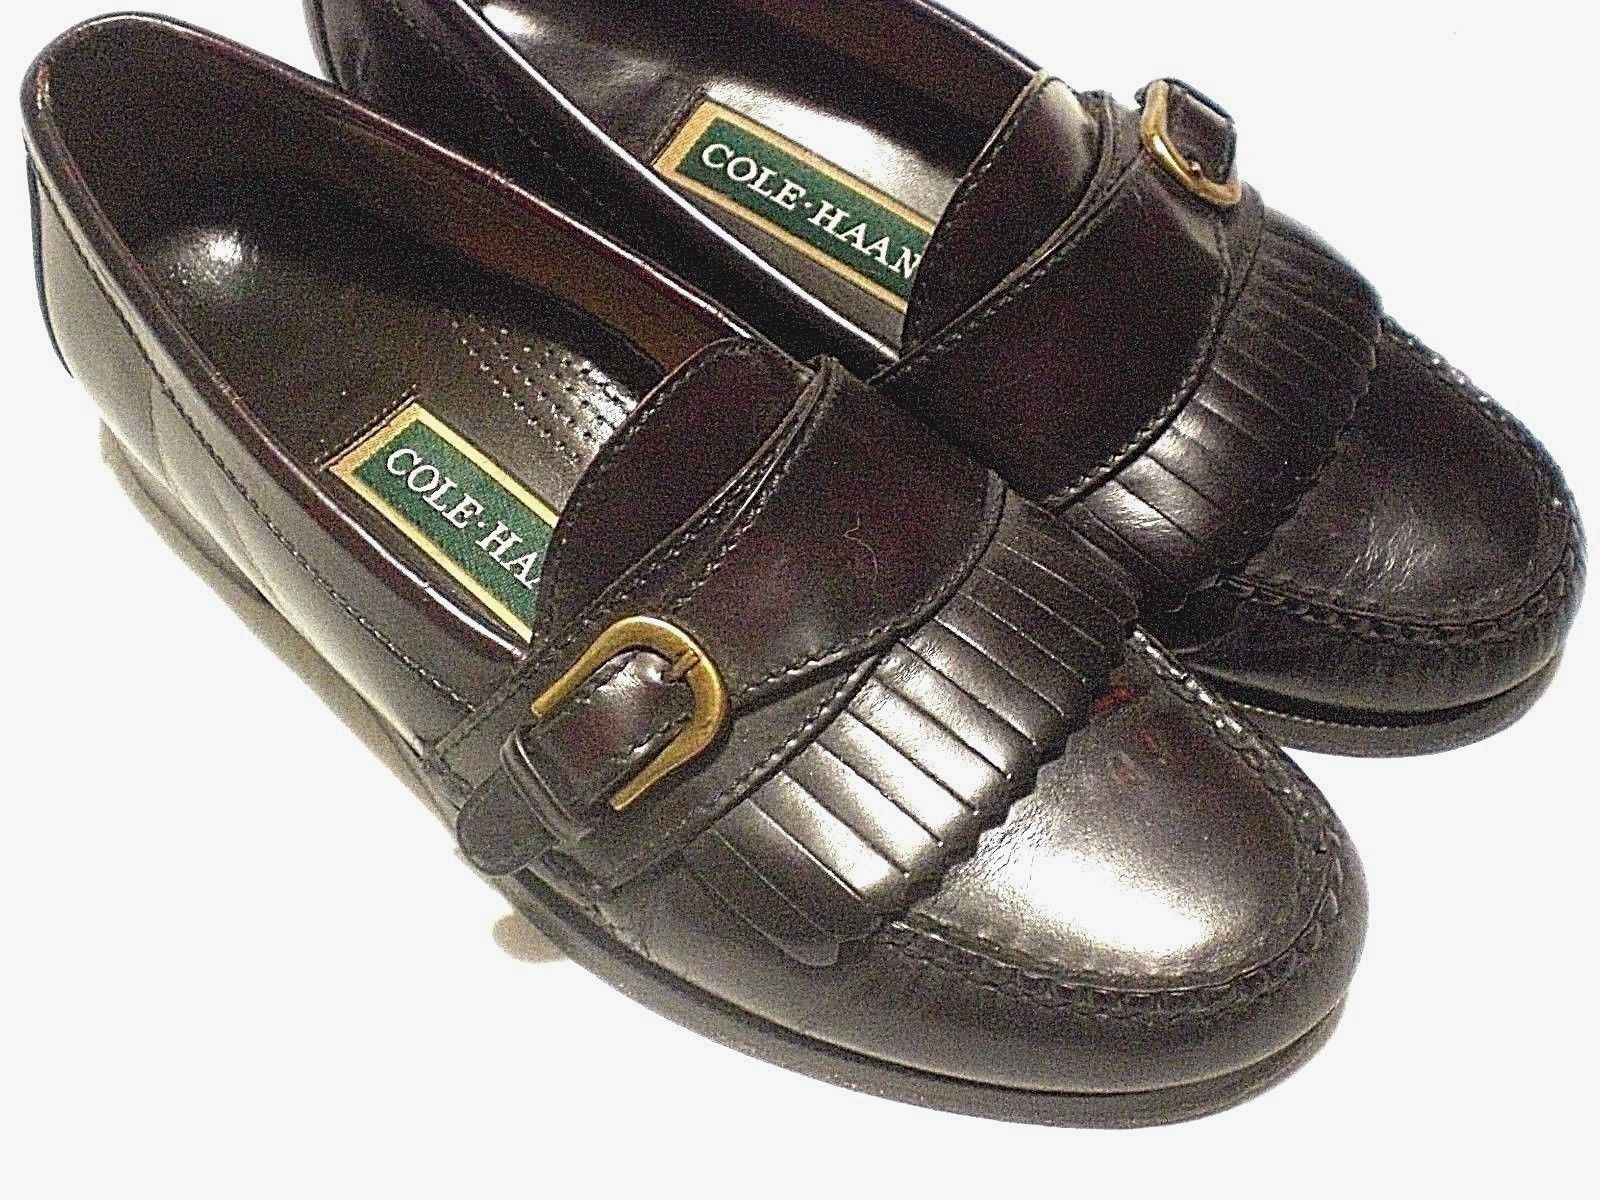 805d26e4f8e Cole Haan Kiltie Monk Strap Loafers Mens Sz and 50 similar items. 57